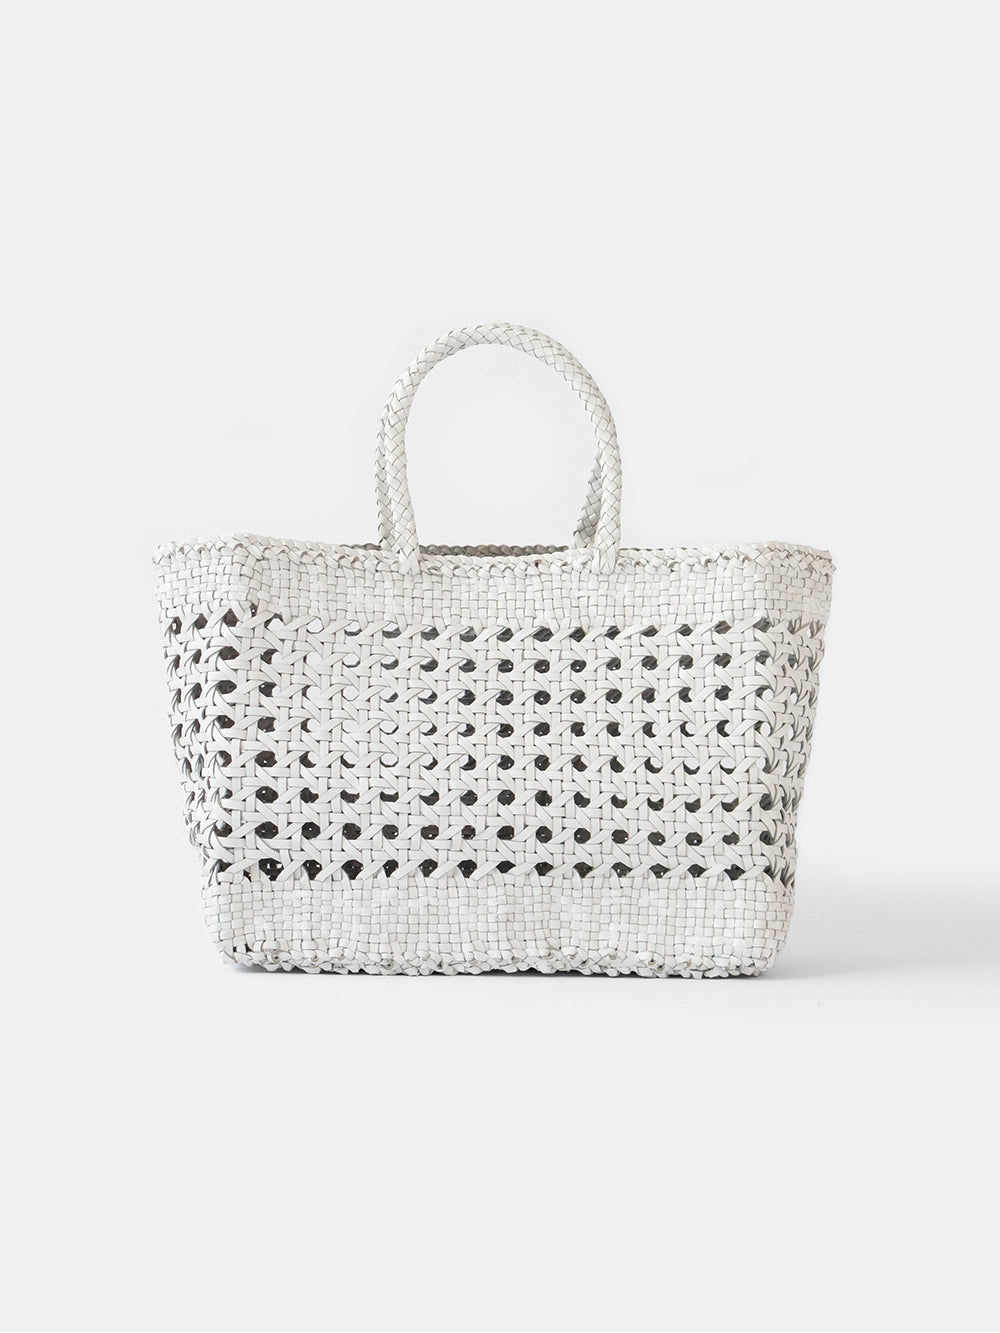 dragon diffusion cannage bag in white